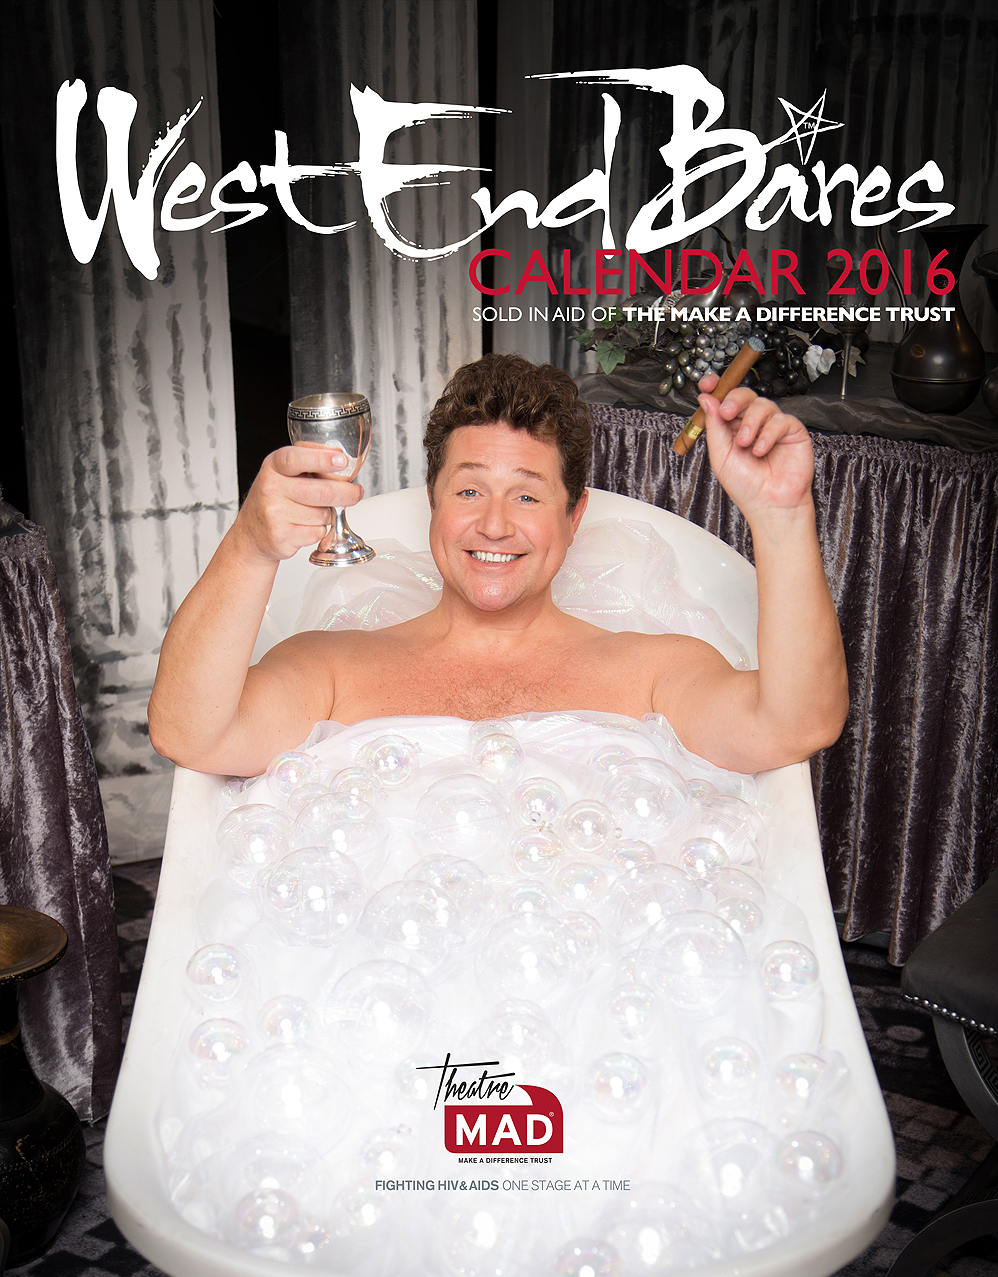 Sir Michael Ball photographed for the 2016 calendar cover at Chichester Festival theatre